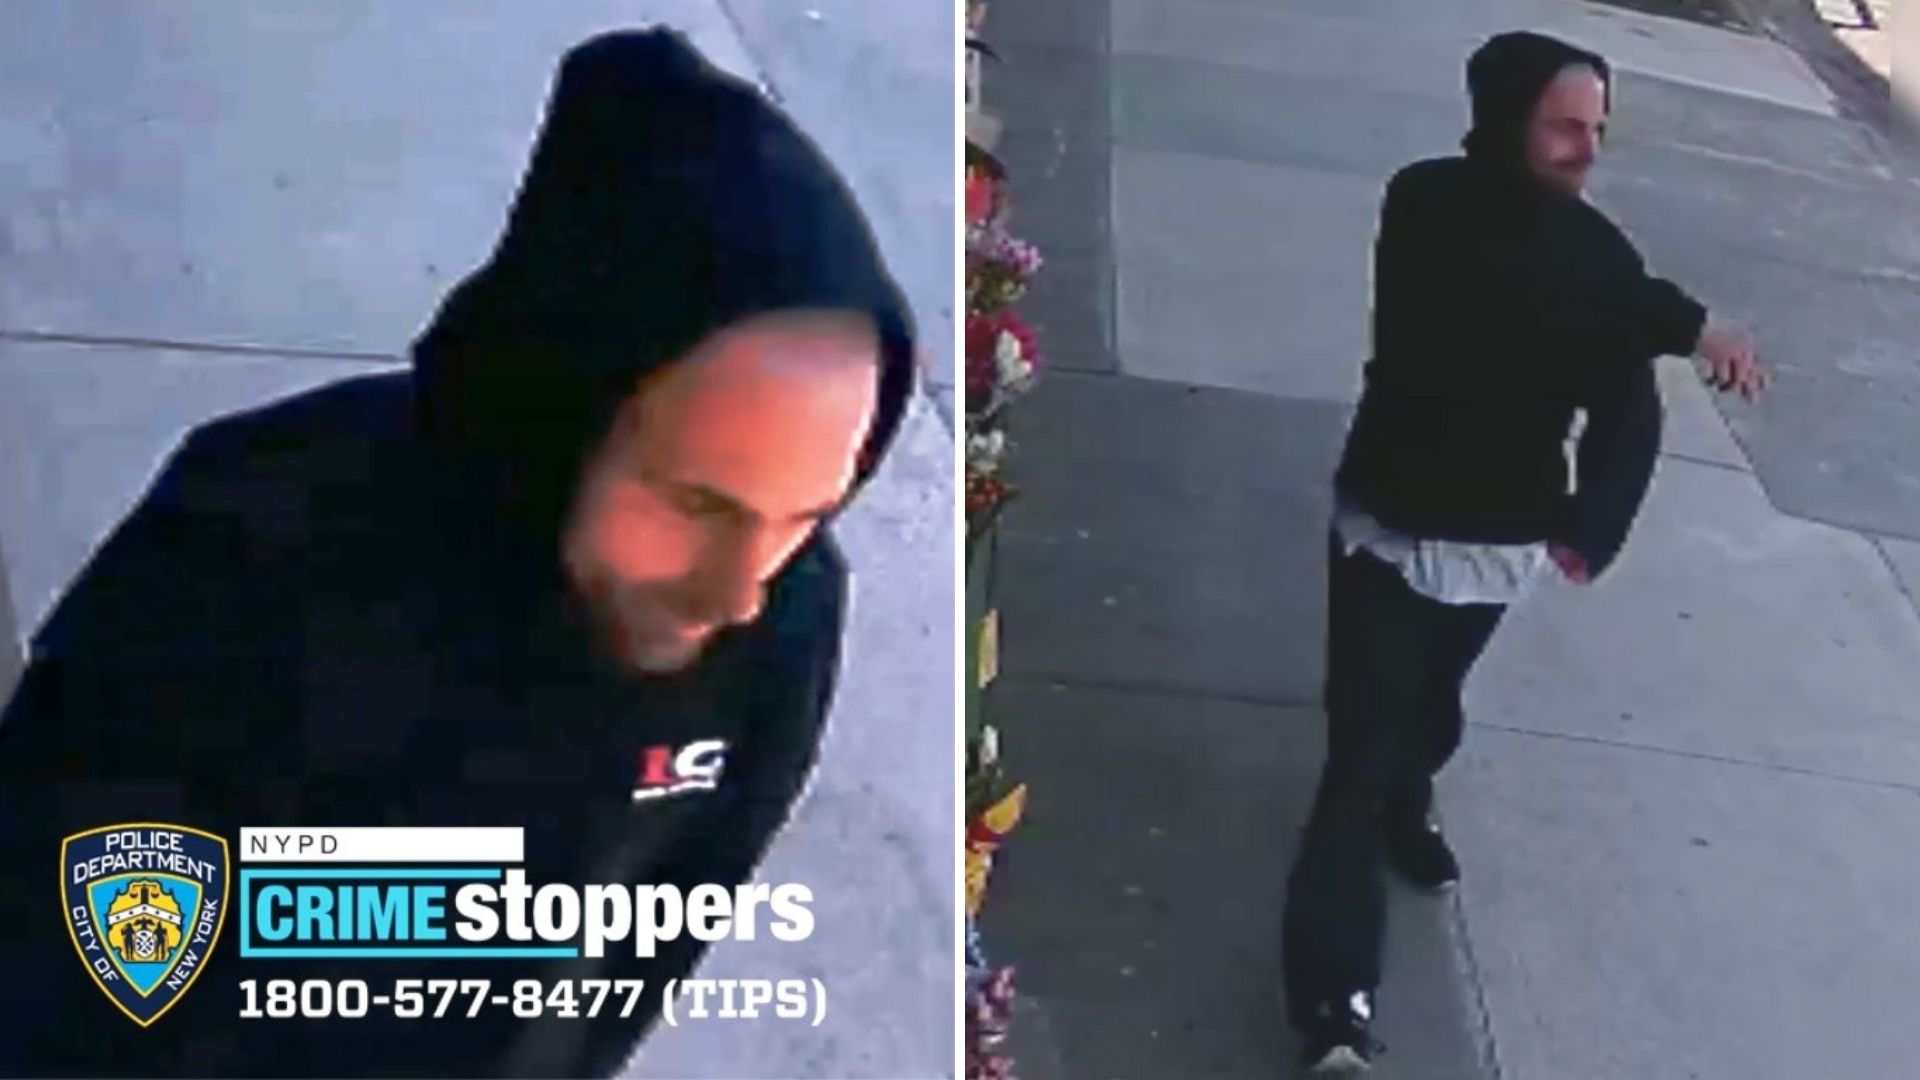 Surveillance images of a man accused of shoving an Asian man, 77, to the ground in Brooklyn on April 5, 2021, according to police. (NYPD)